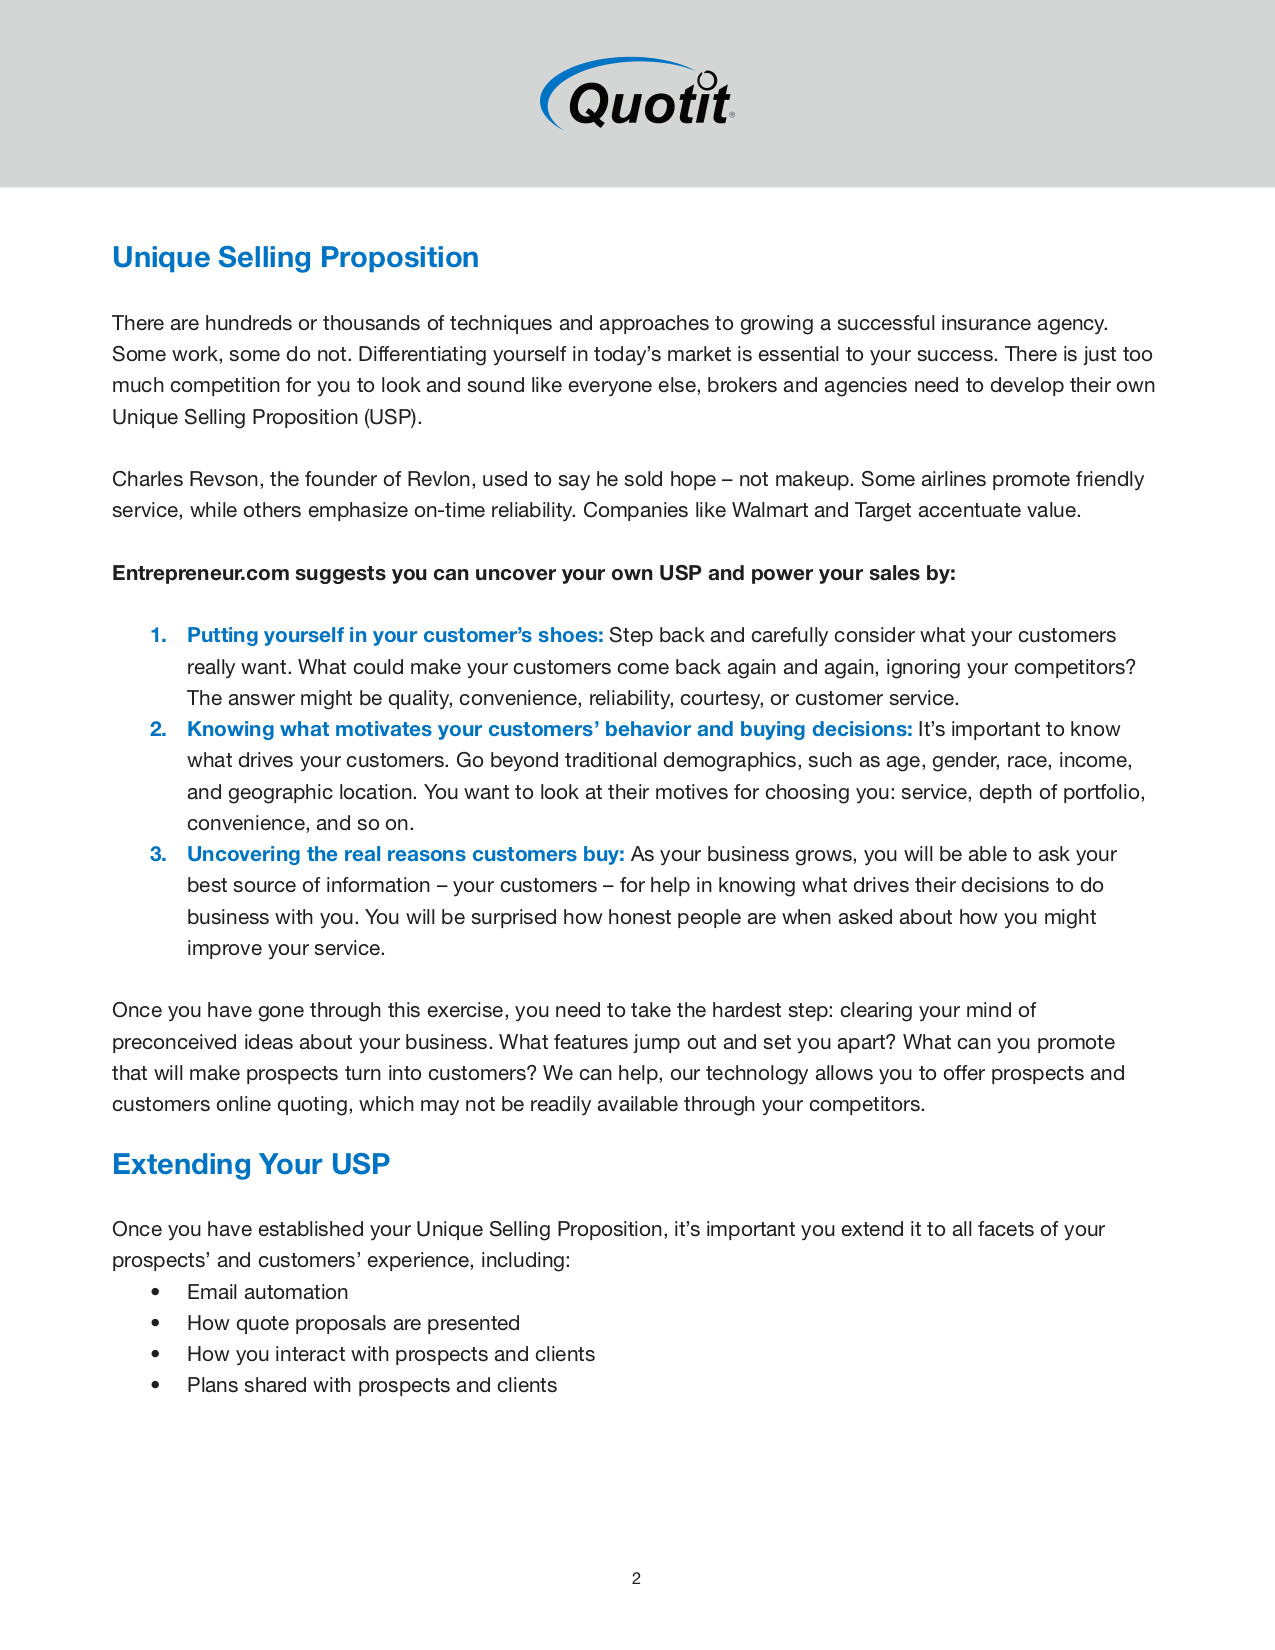 Grow Your Business (page 2)